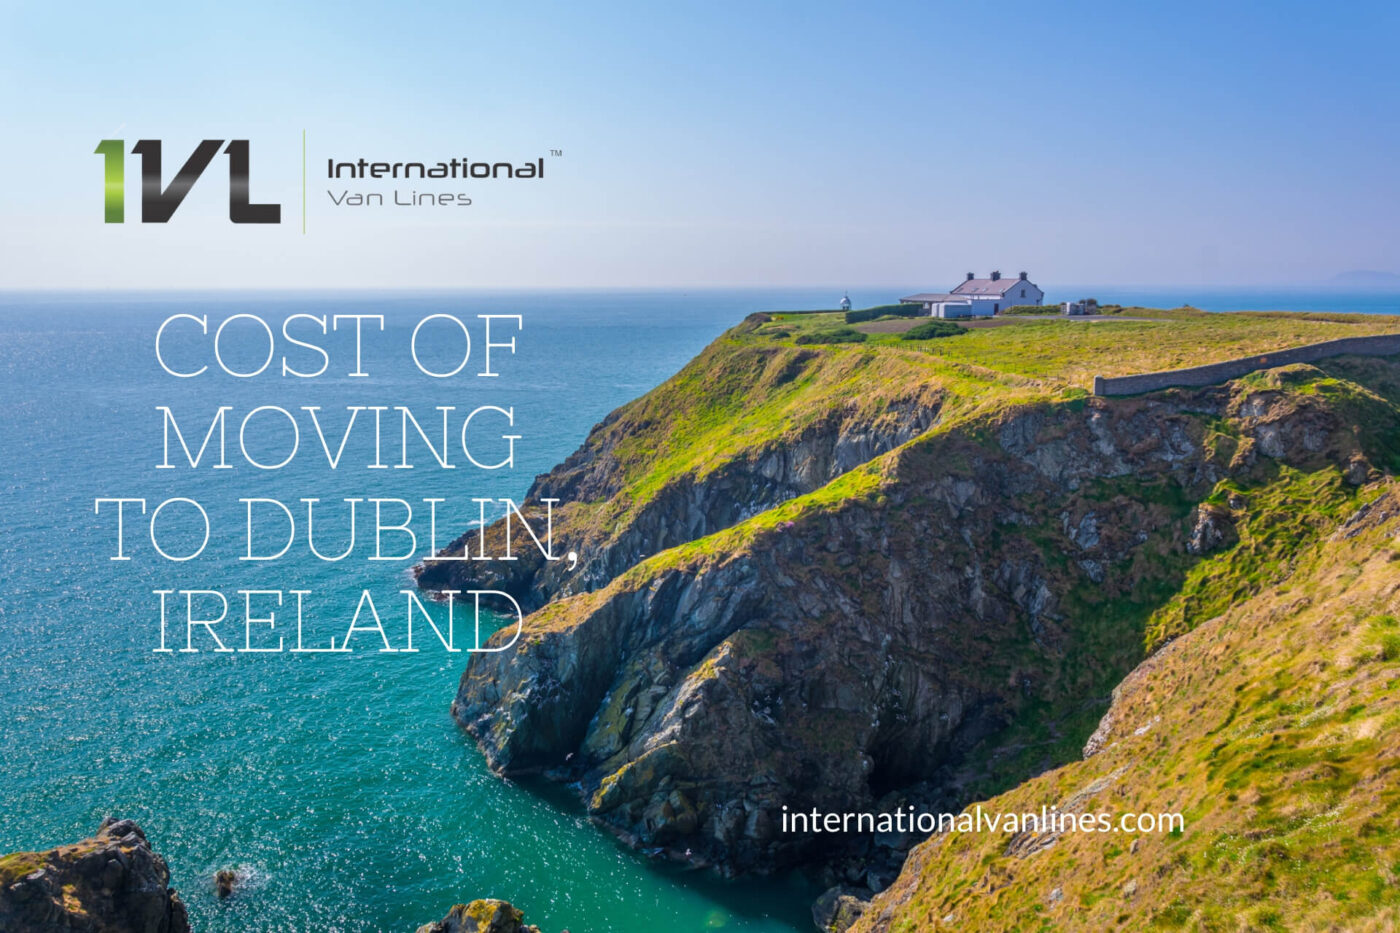 Cost of Moving to Dublin, Ireland